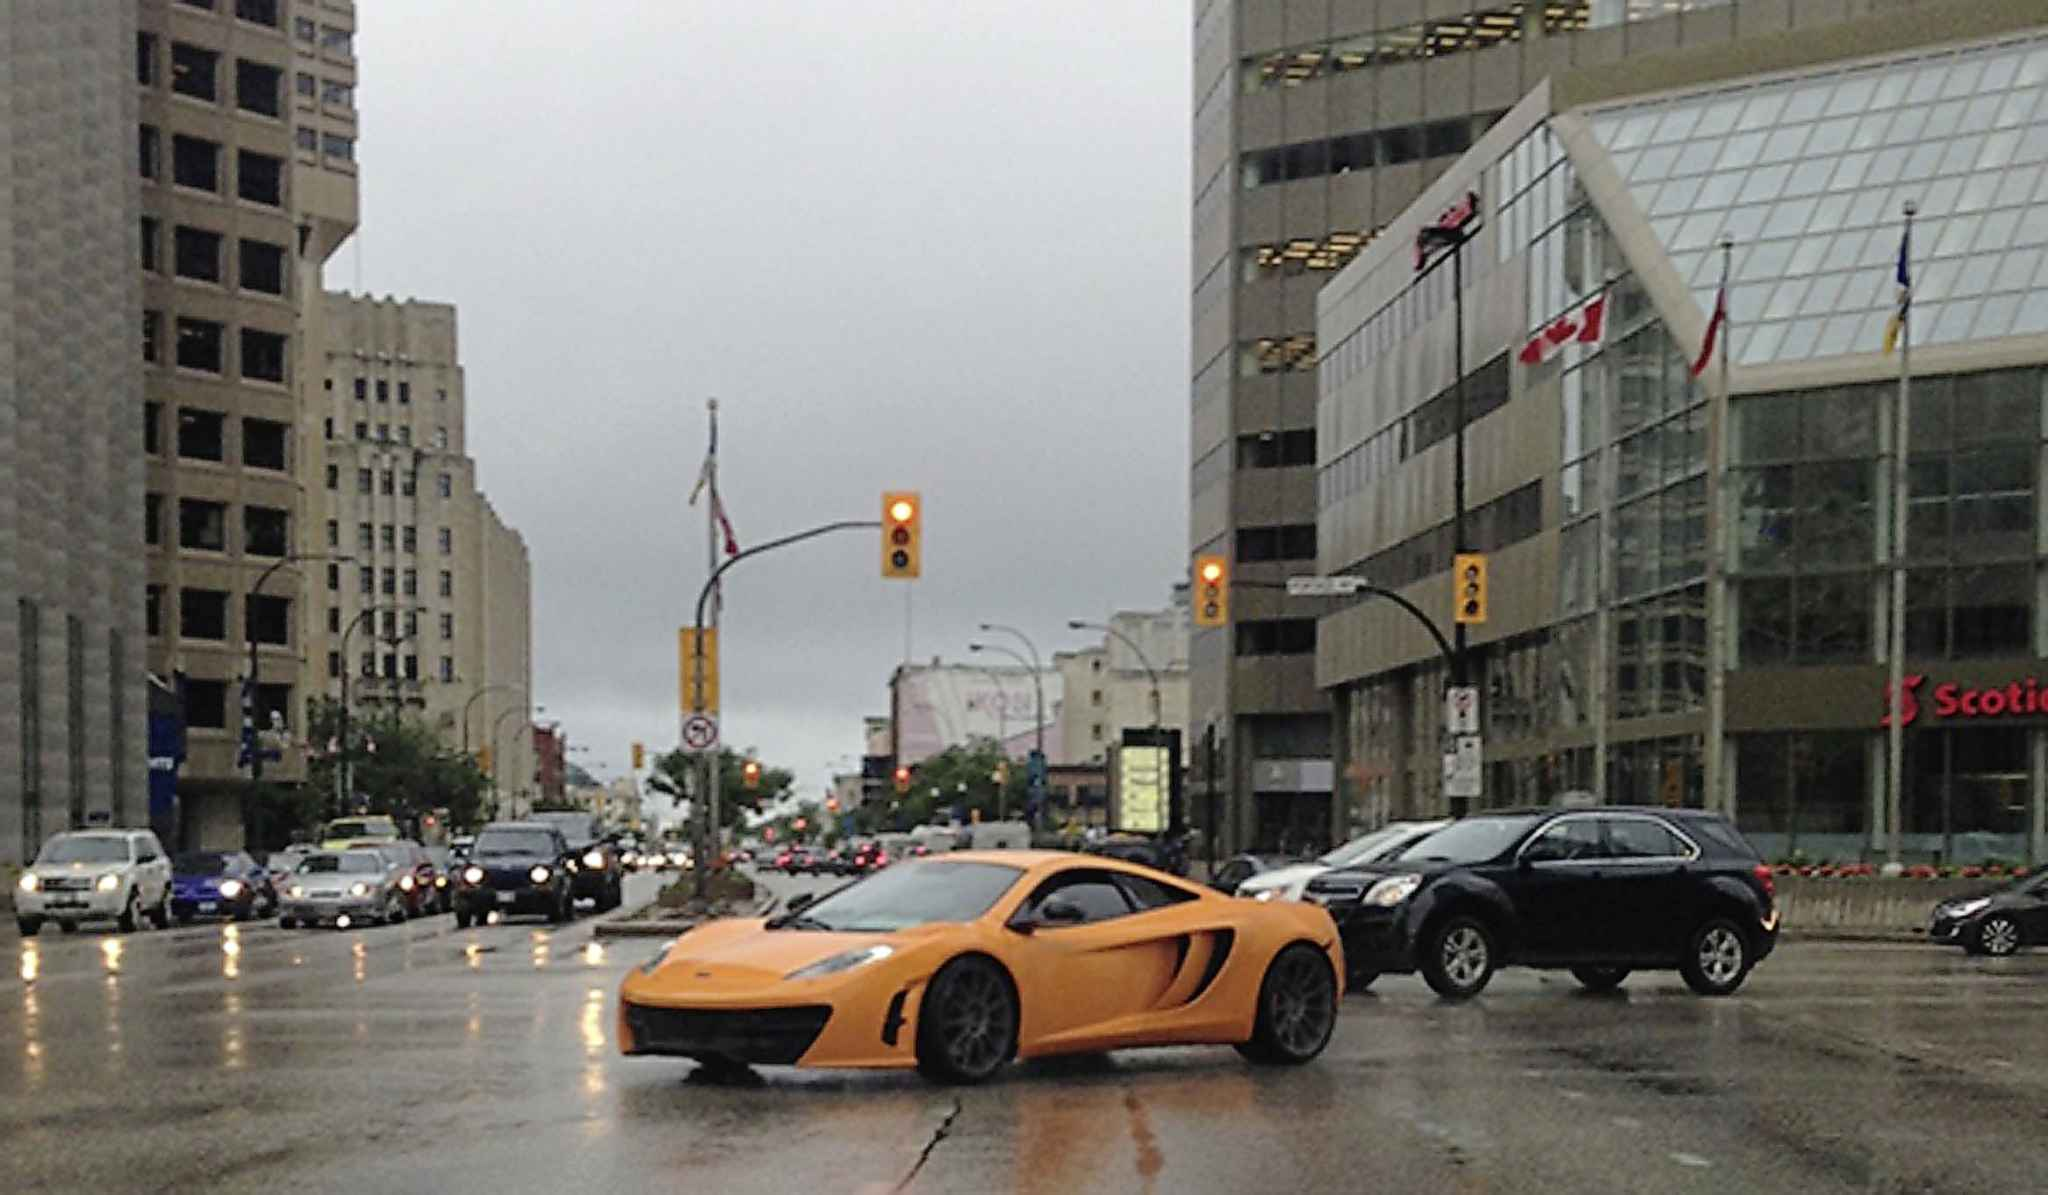 A McLaren sports car was among the luxury vehicles Ramdath drove. (Court document photo)